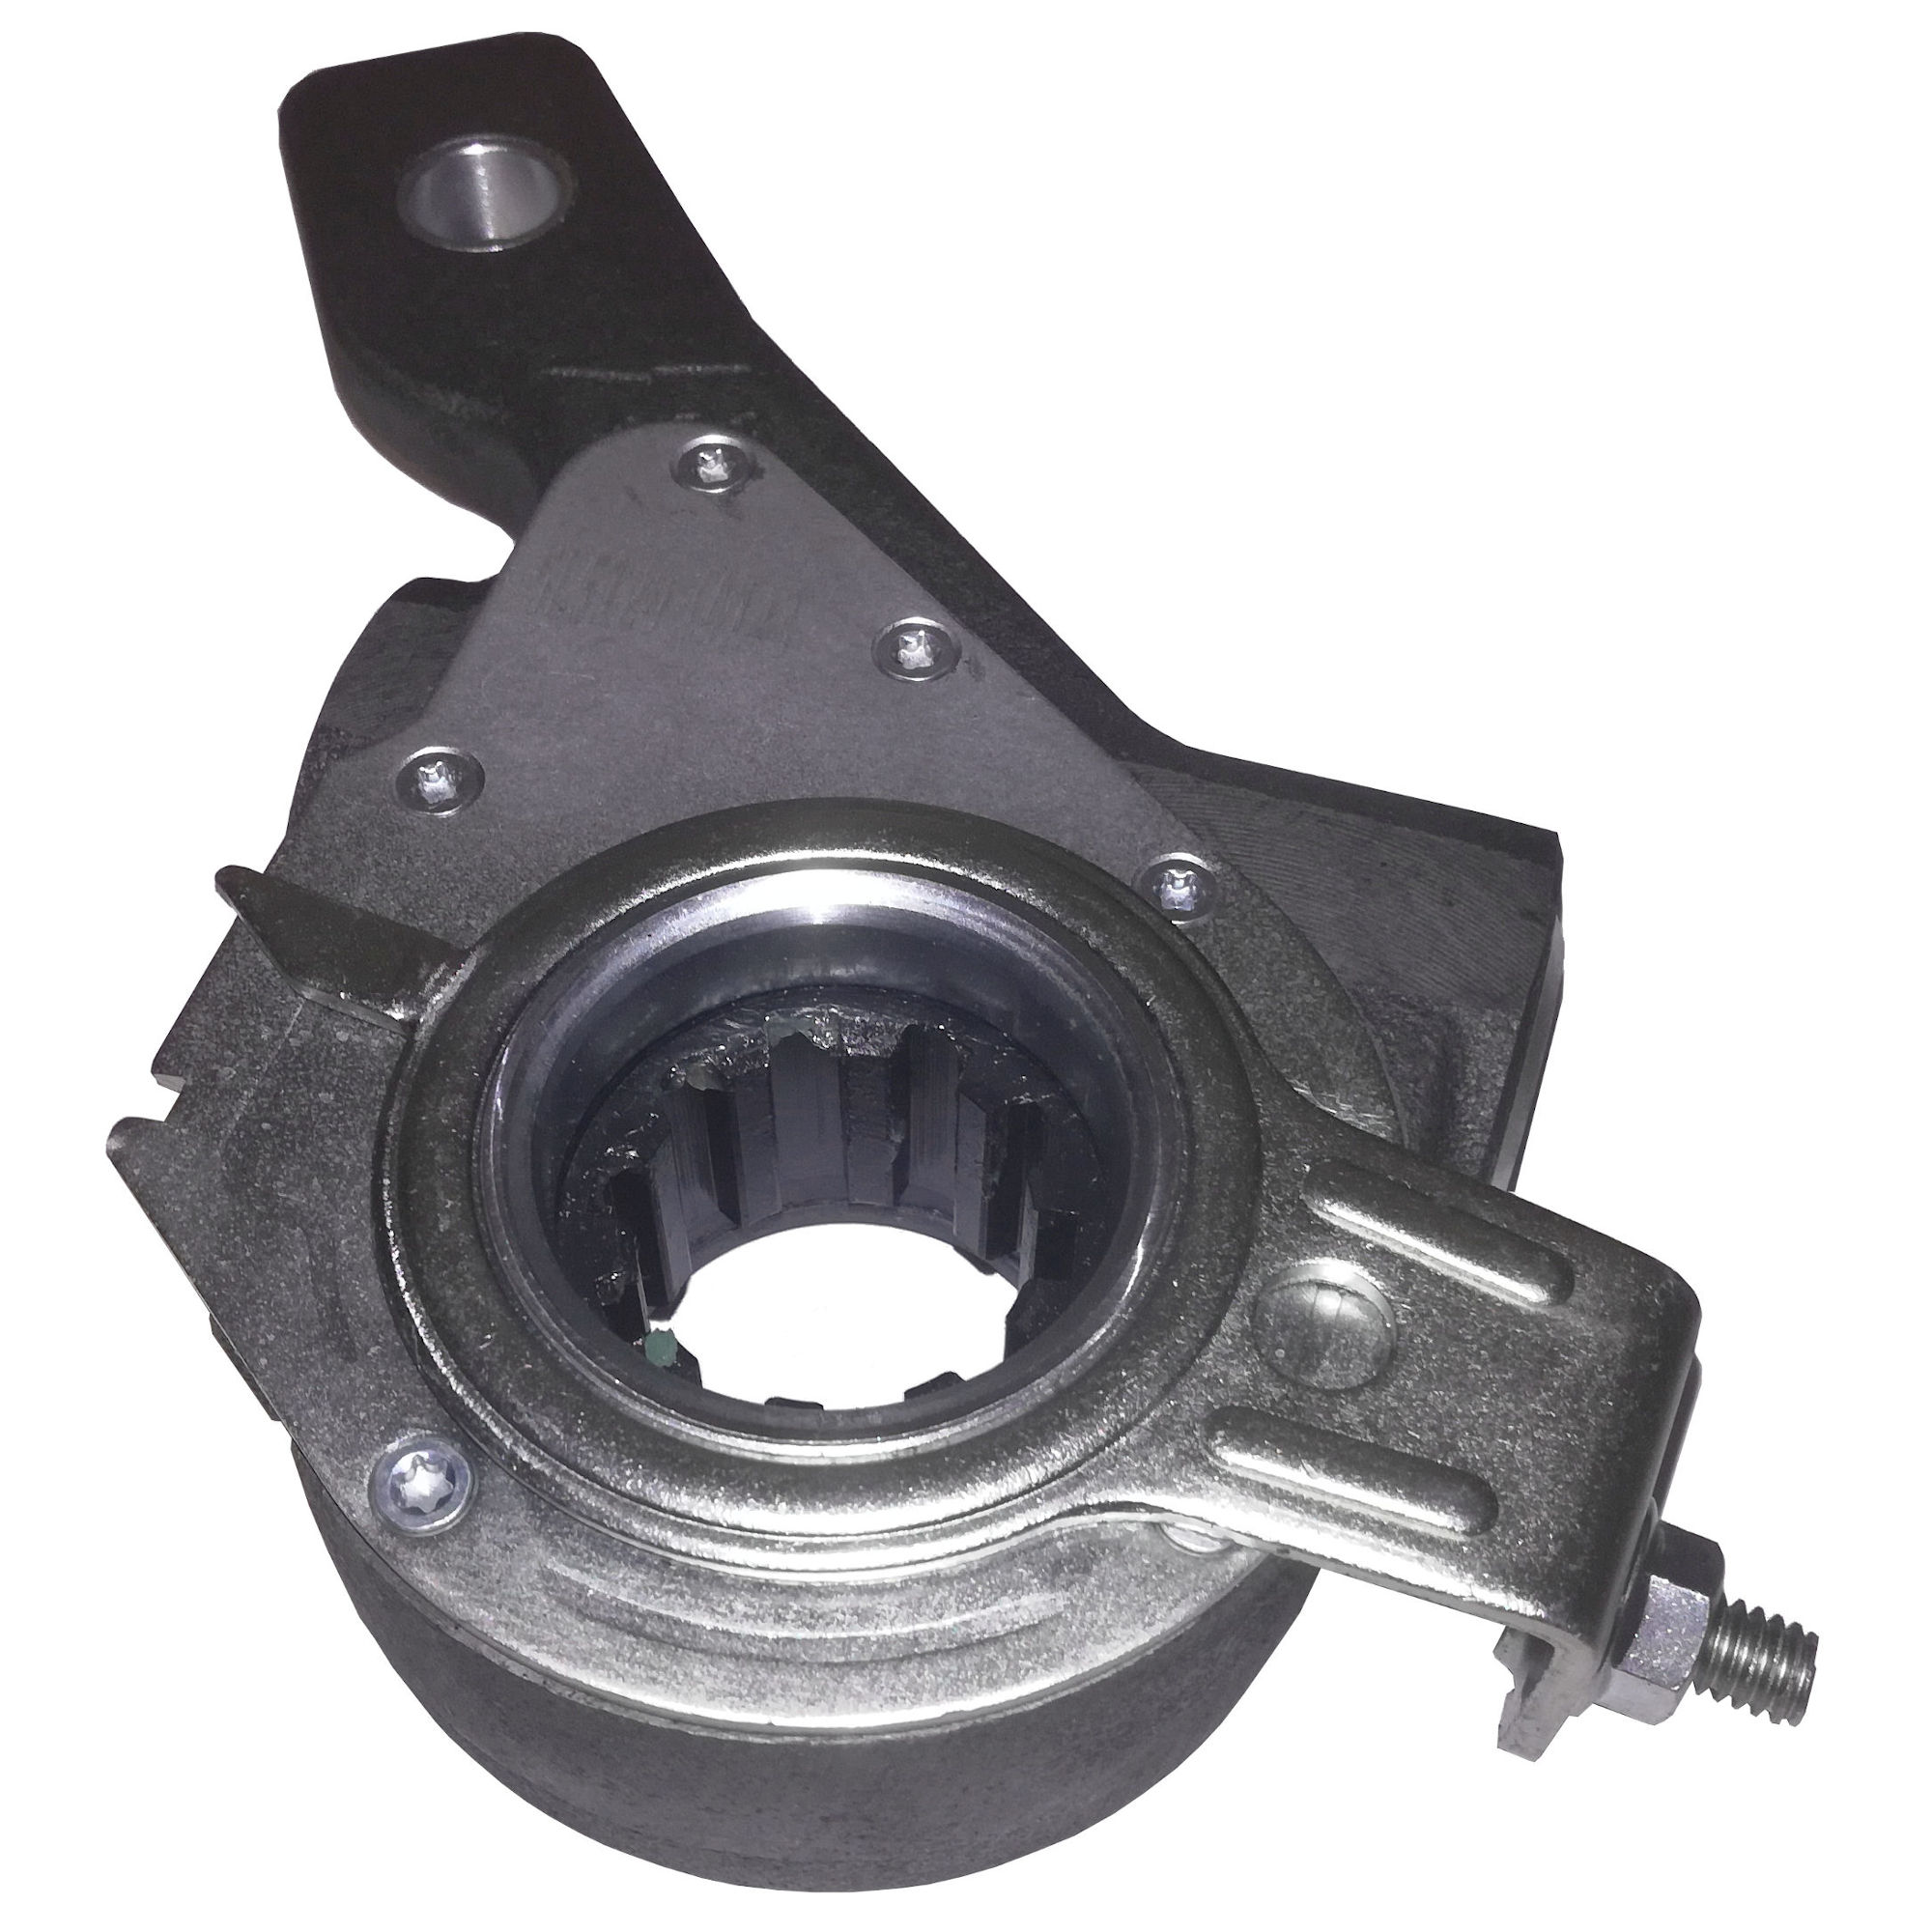 "Automatic Air Brake Slack Adjuster - 1.5"" - 5.5"" Span - 10 Splines"